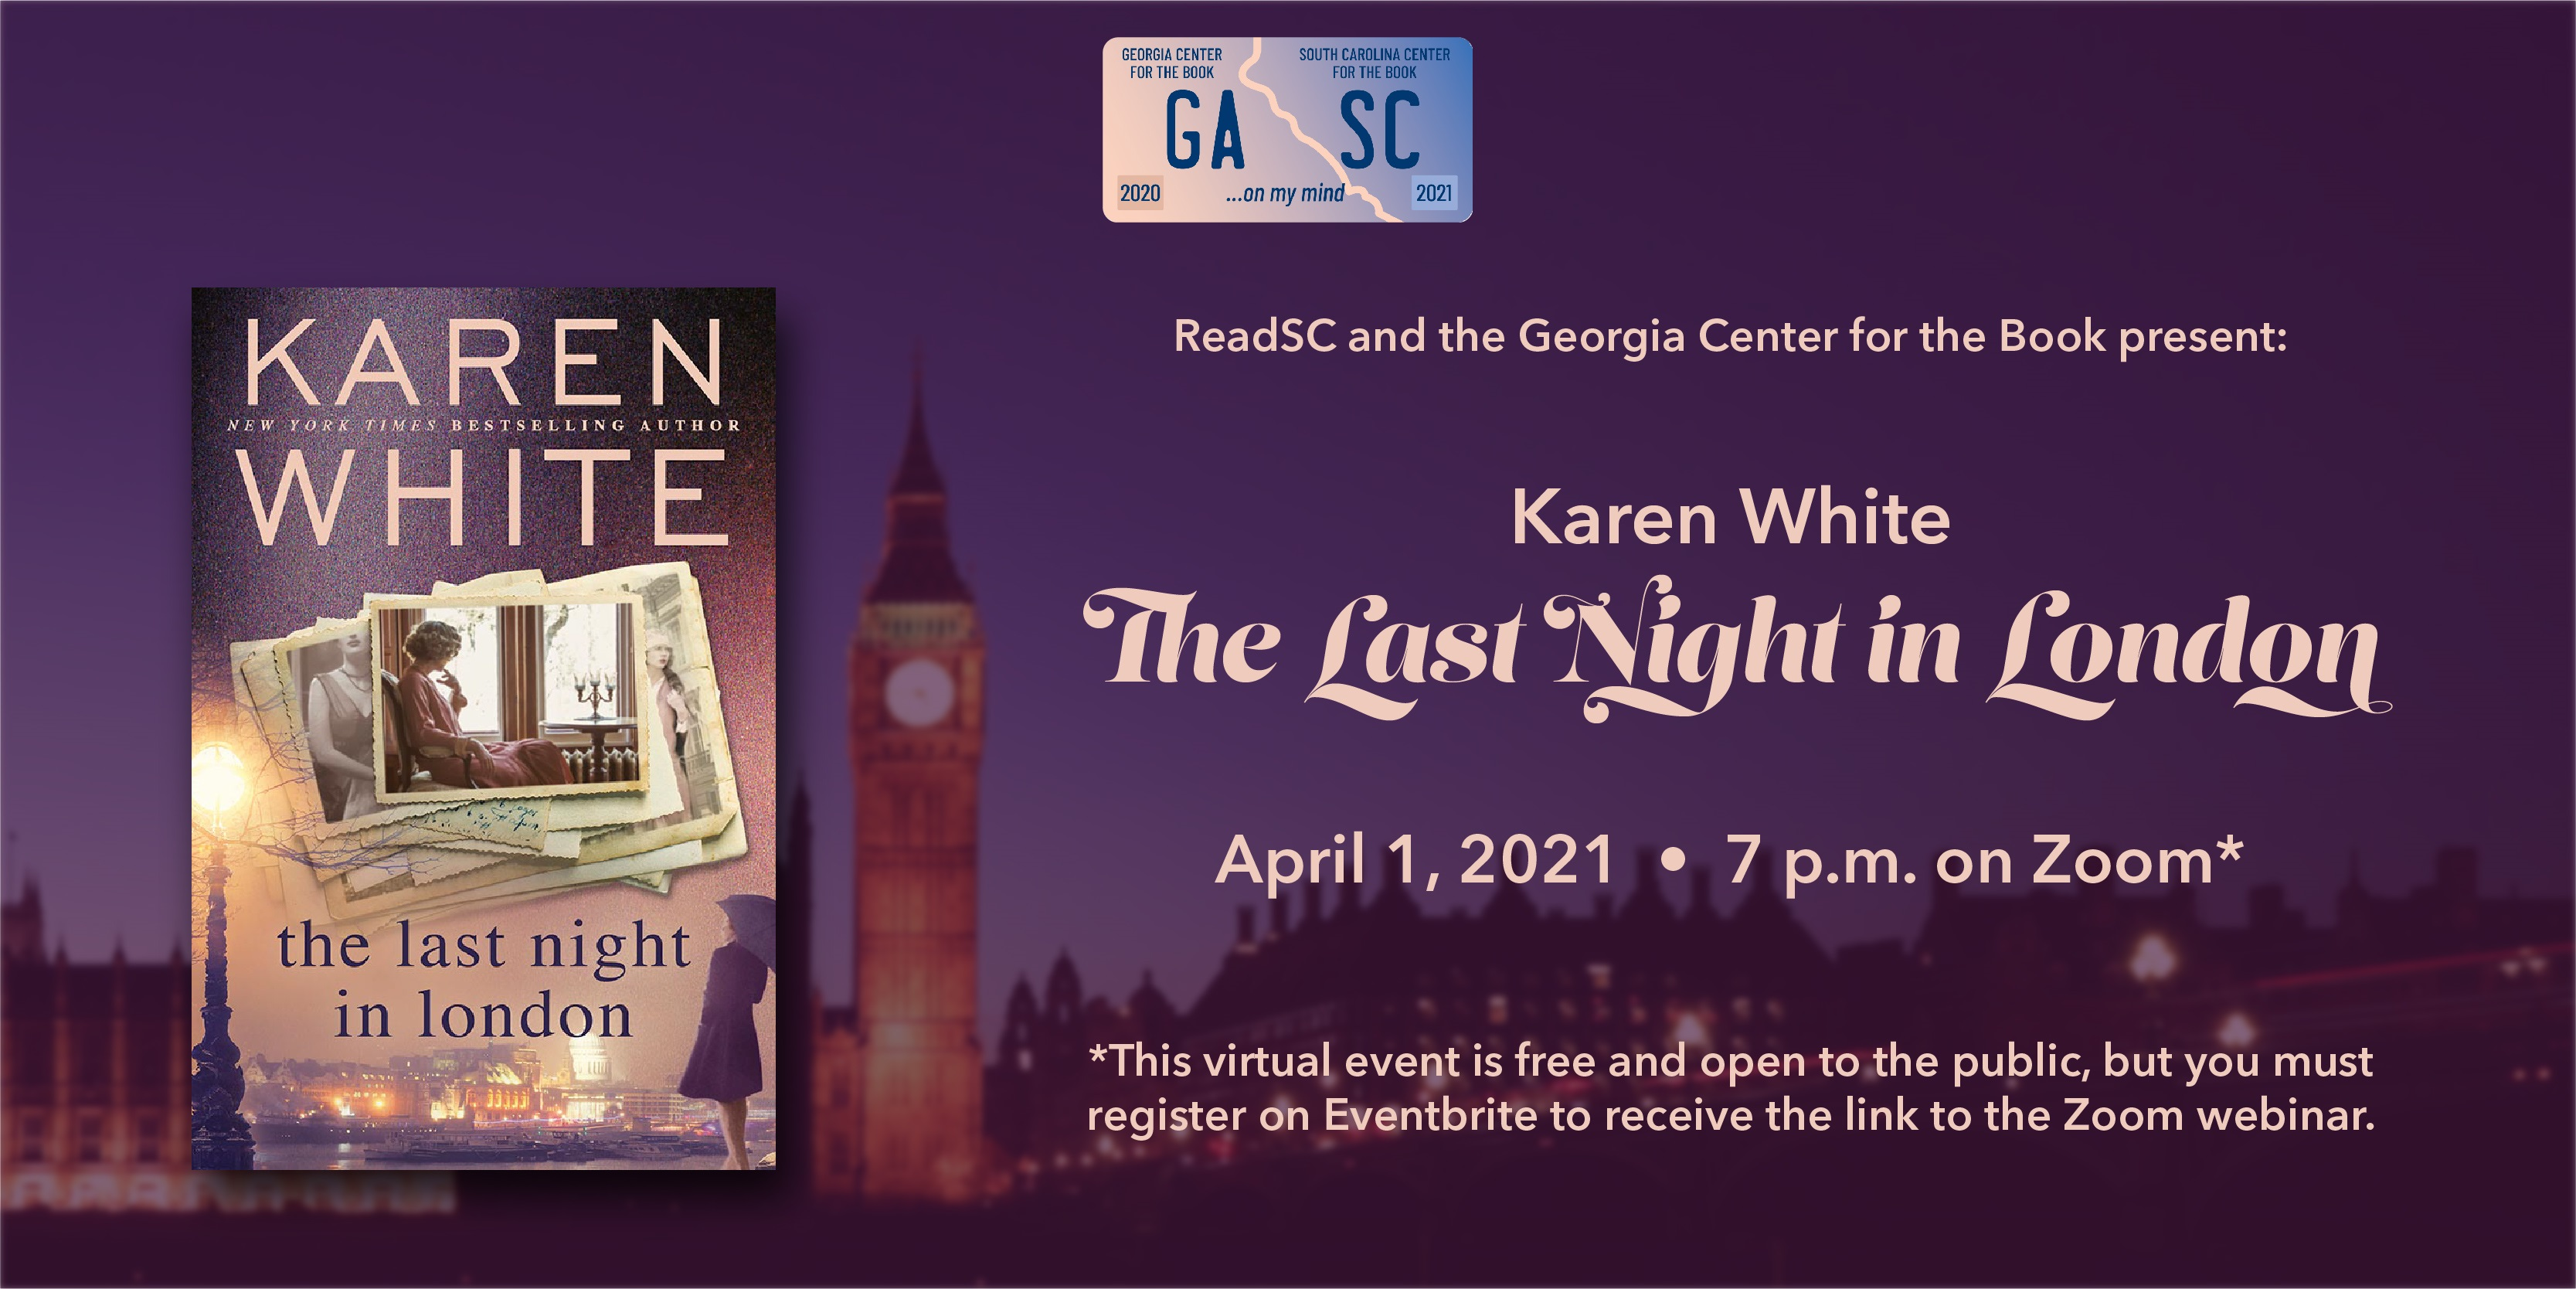 "Cover of the book ""The Last Night in London"" is superimposed on a purple background on the left, details about the event are on the right side of the image."